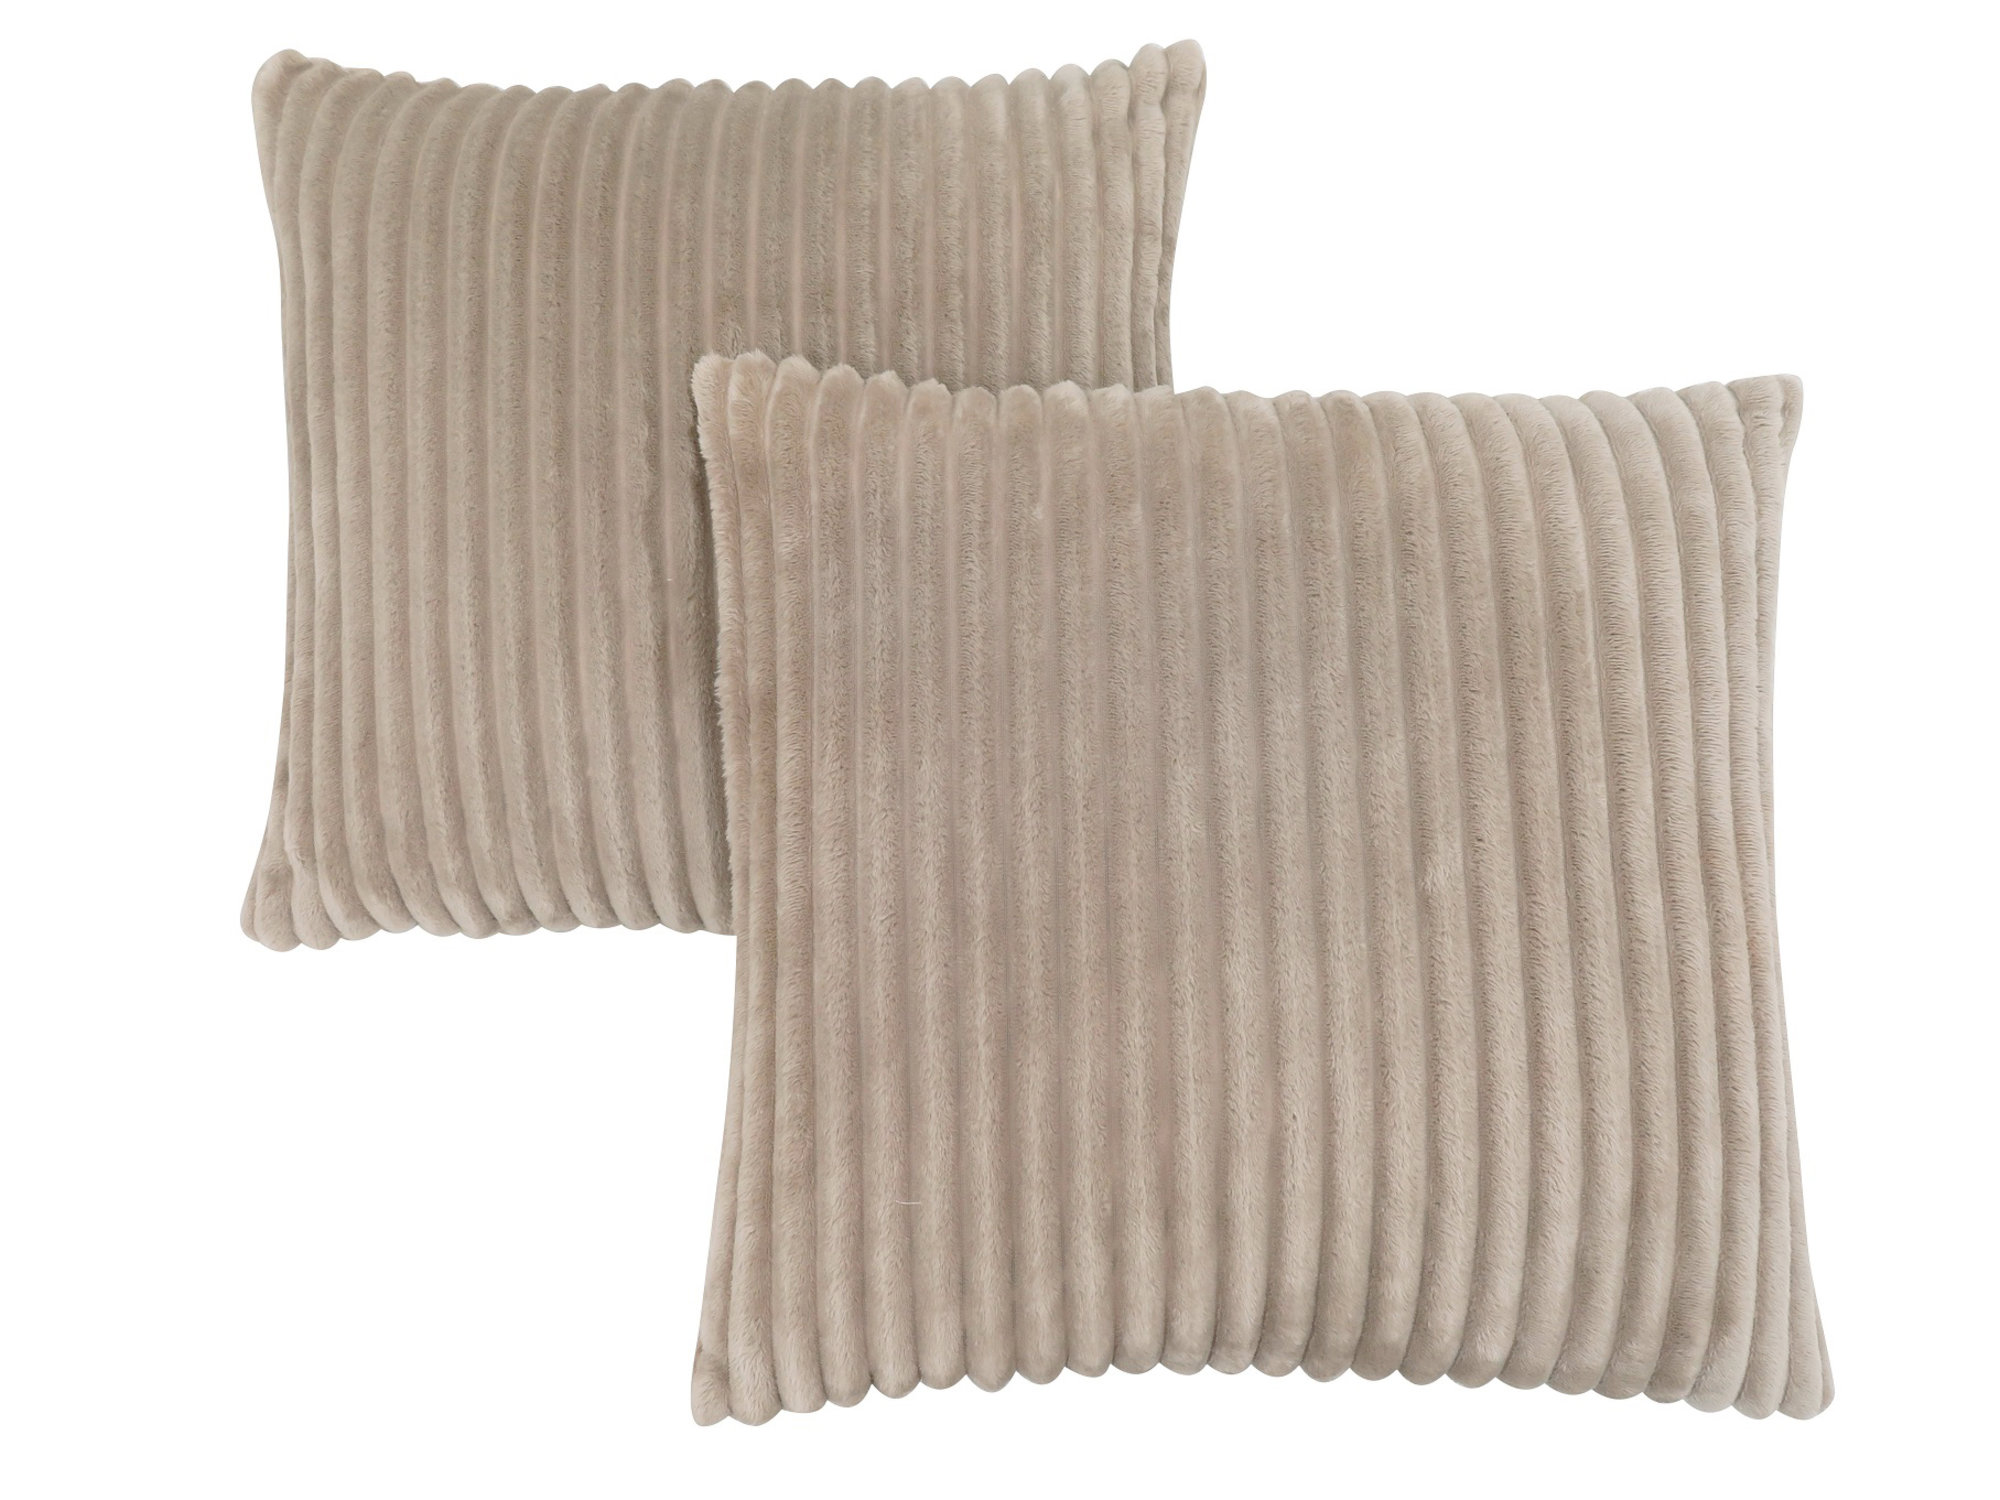 "PILLOW - 18""X 18"" / BEIGE TEXTURED RIB / 2PCS"